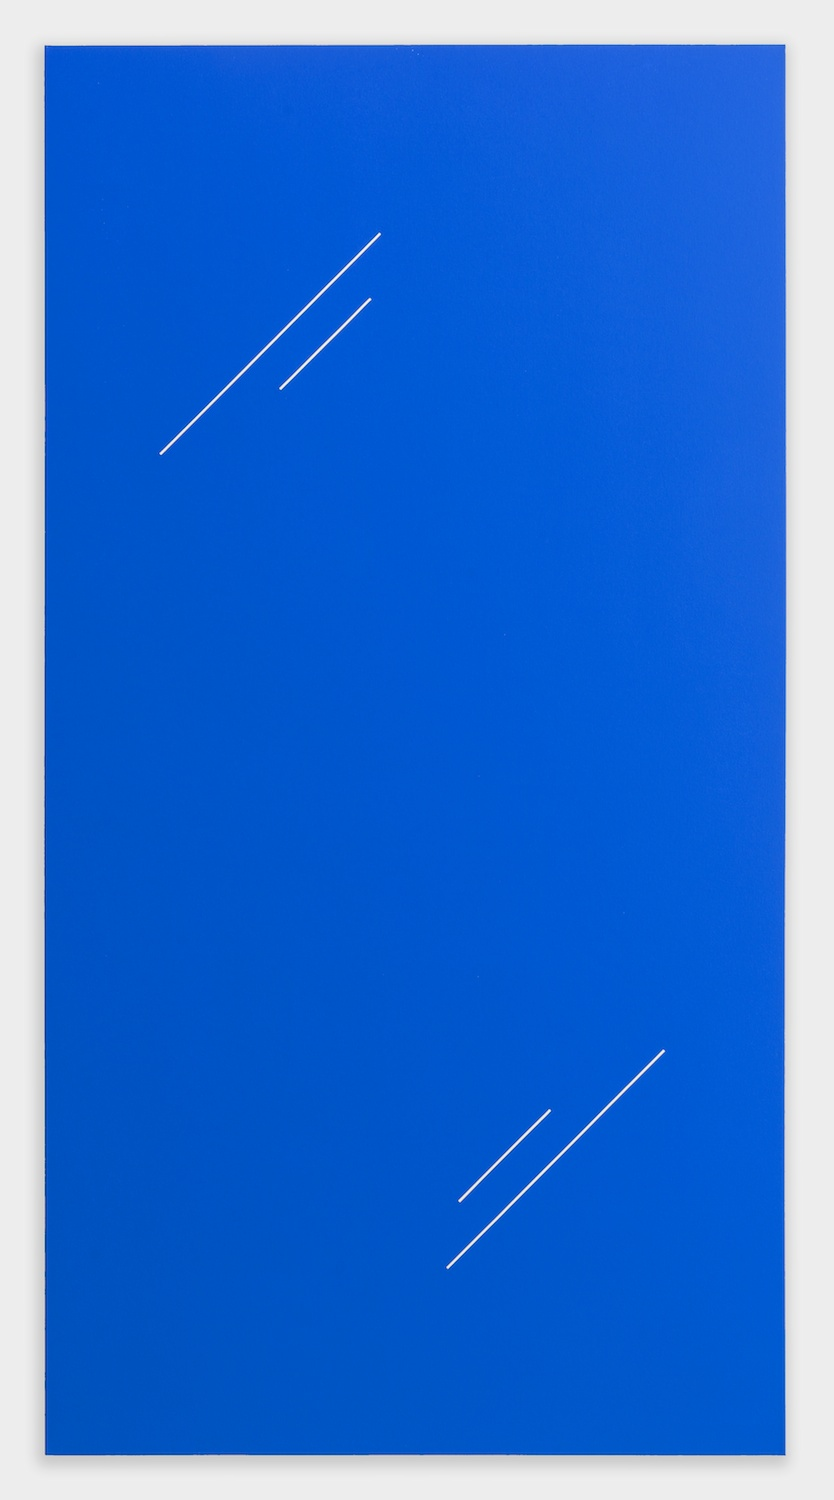 "Paul Cowan BCEAUSE THE SKY IS BULE 2013 Chroma-key Blue Paint On Canvas 78"" x 41"" PC078"